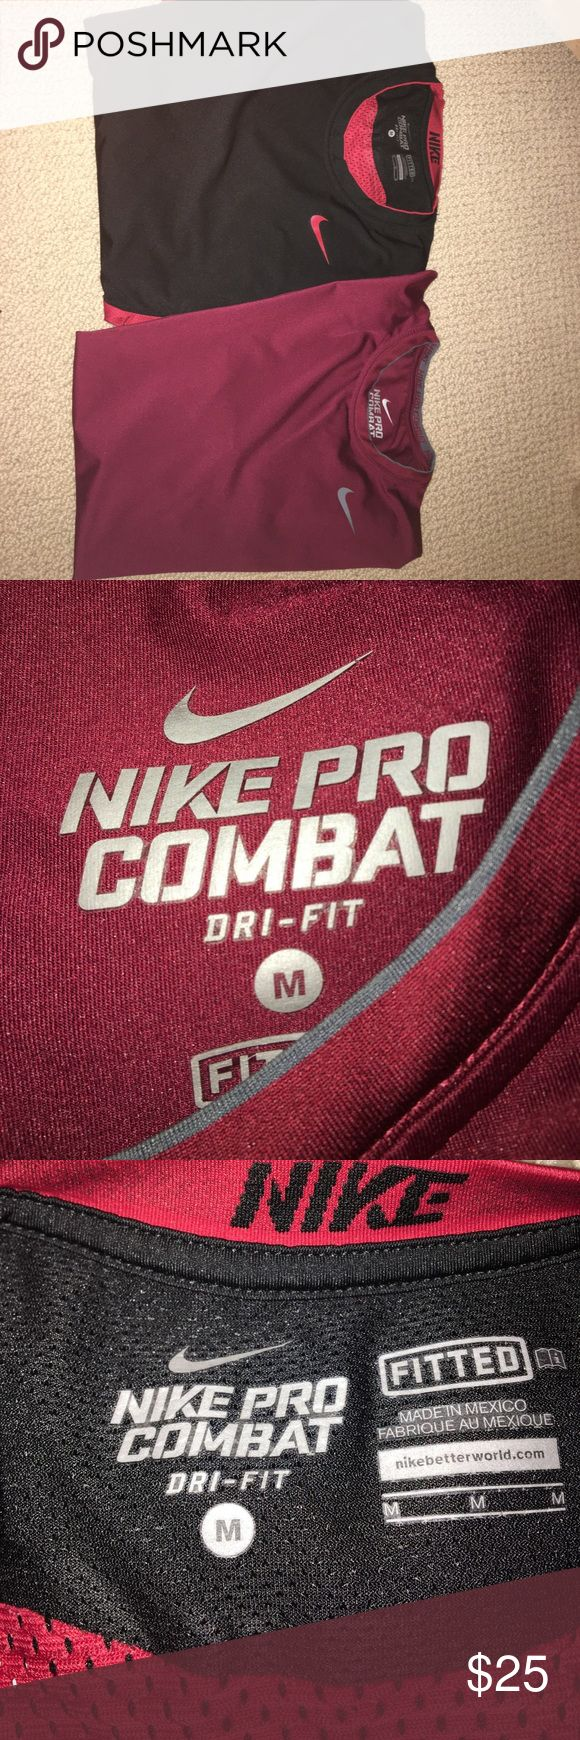 Combo 2 Nike Pro Combat shirts Originally both $50 each and selling as a combo. Both size M and both in good condition but worn a few times. Can se separate if needed Nike Shirts Tees - Short Sleeve